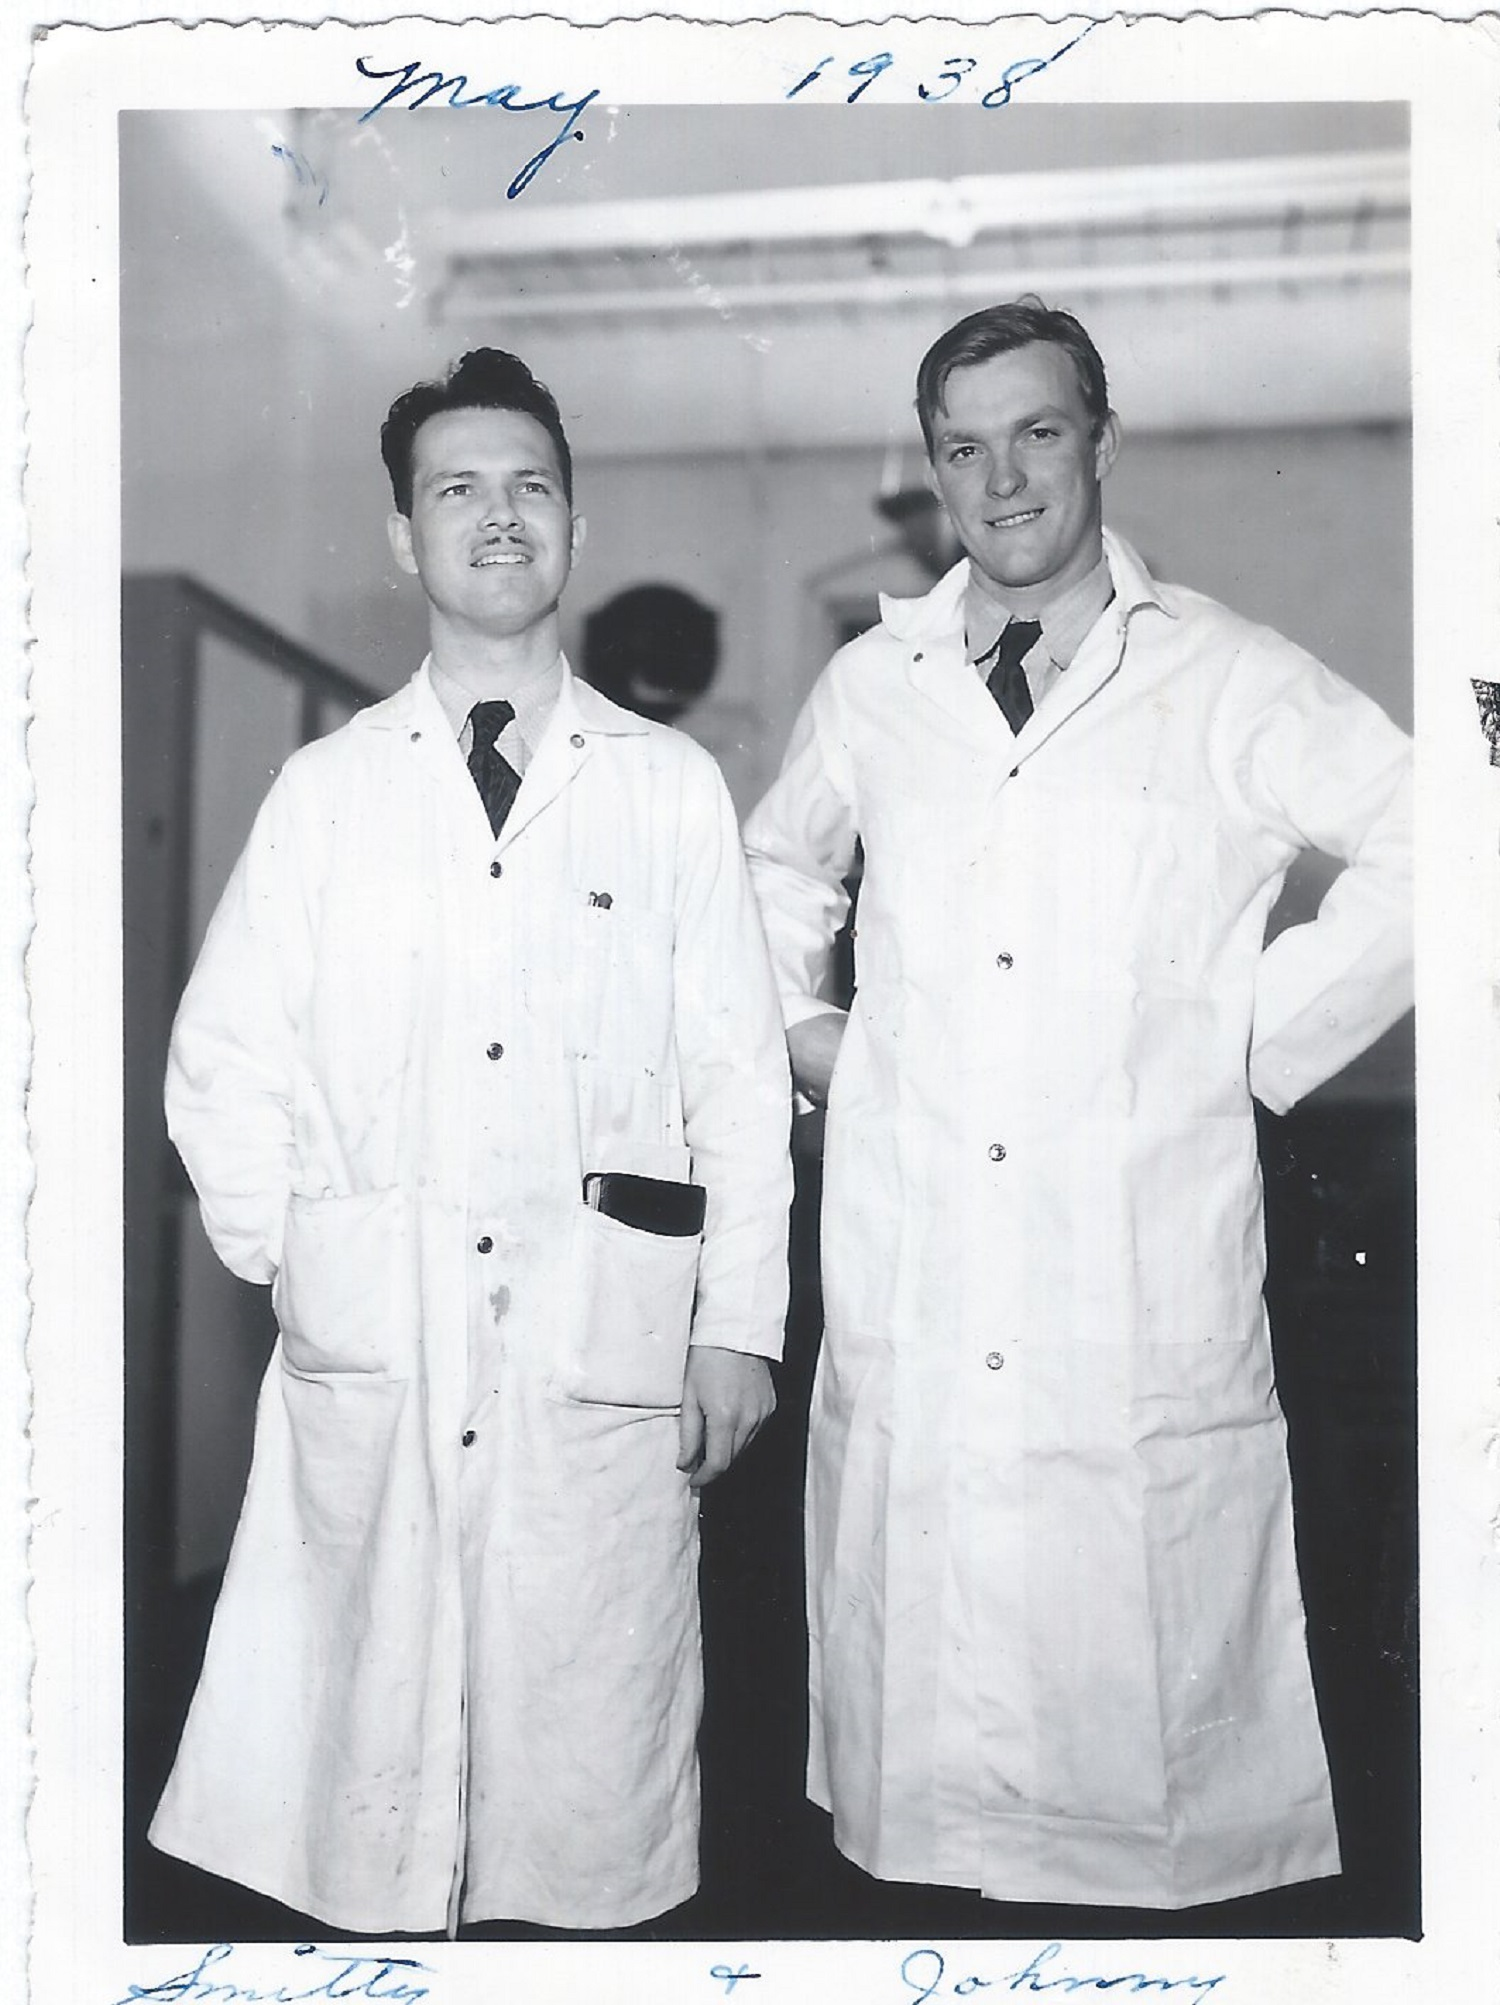 1938 SC Dodge - Mr Johnson lab coats.jpg